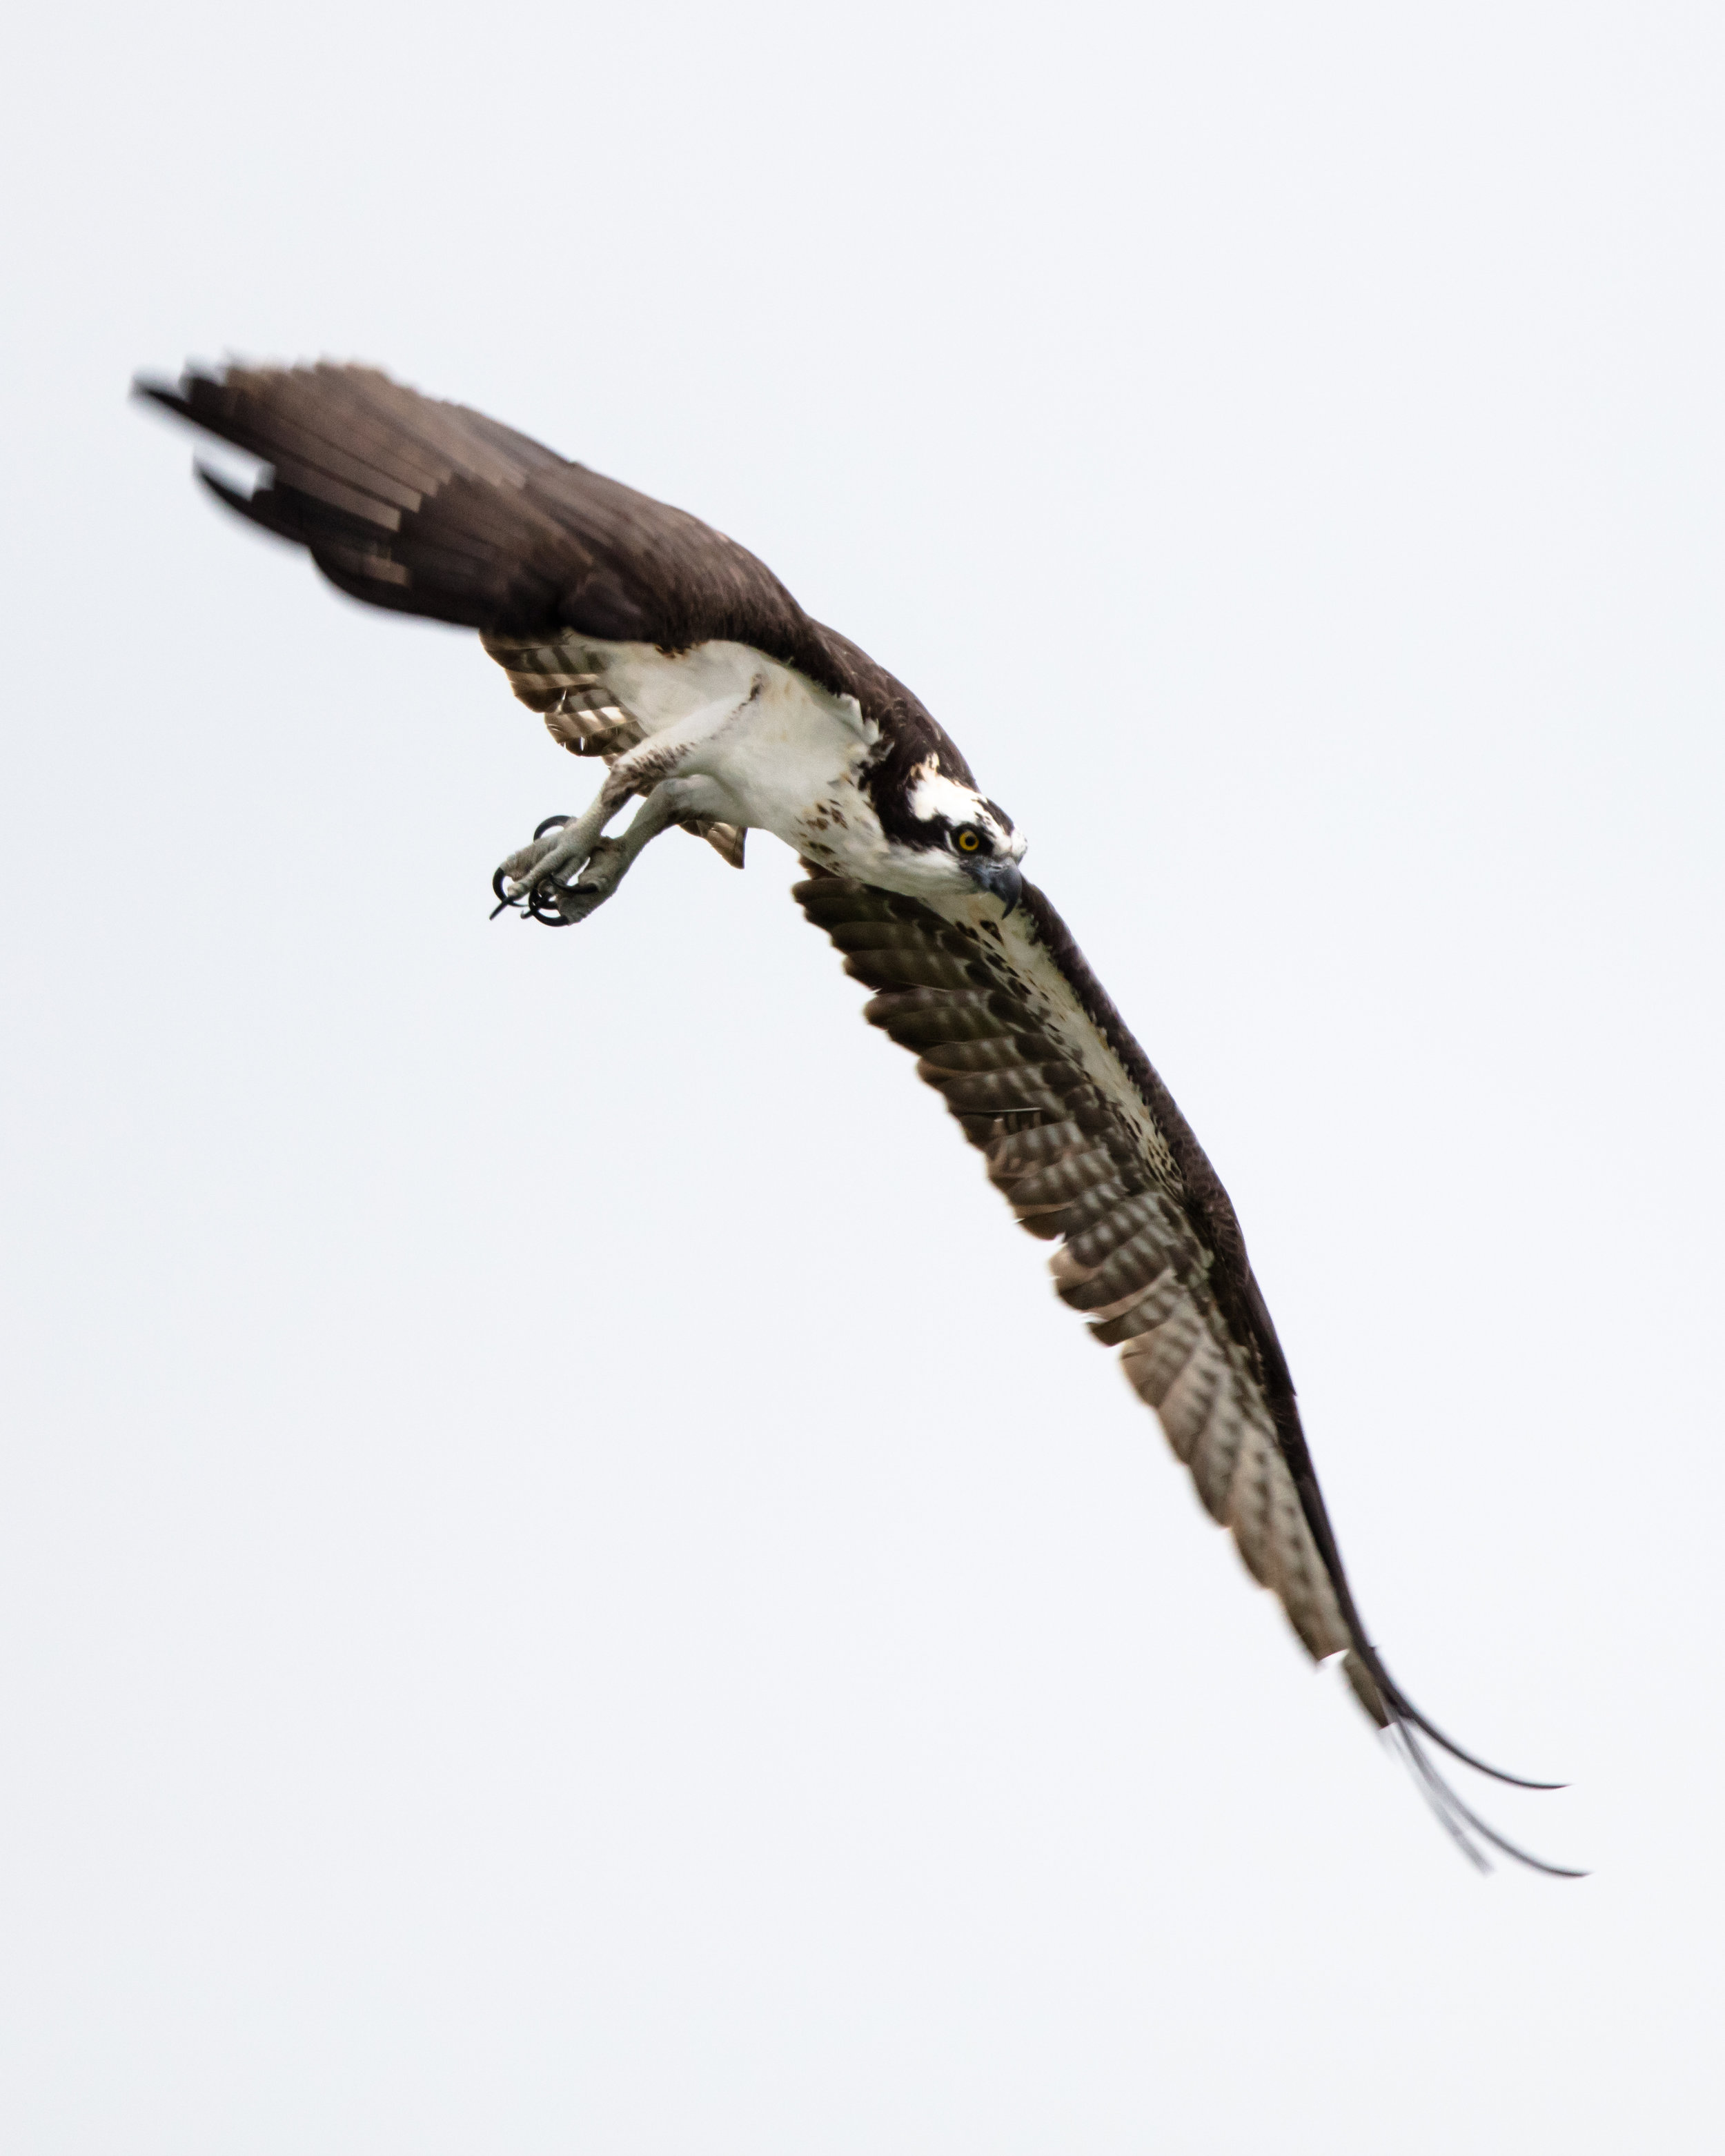 Osprey taking off from a perch overlooking the Niagara River.